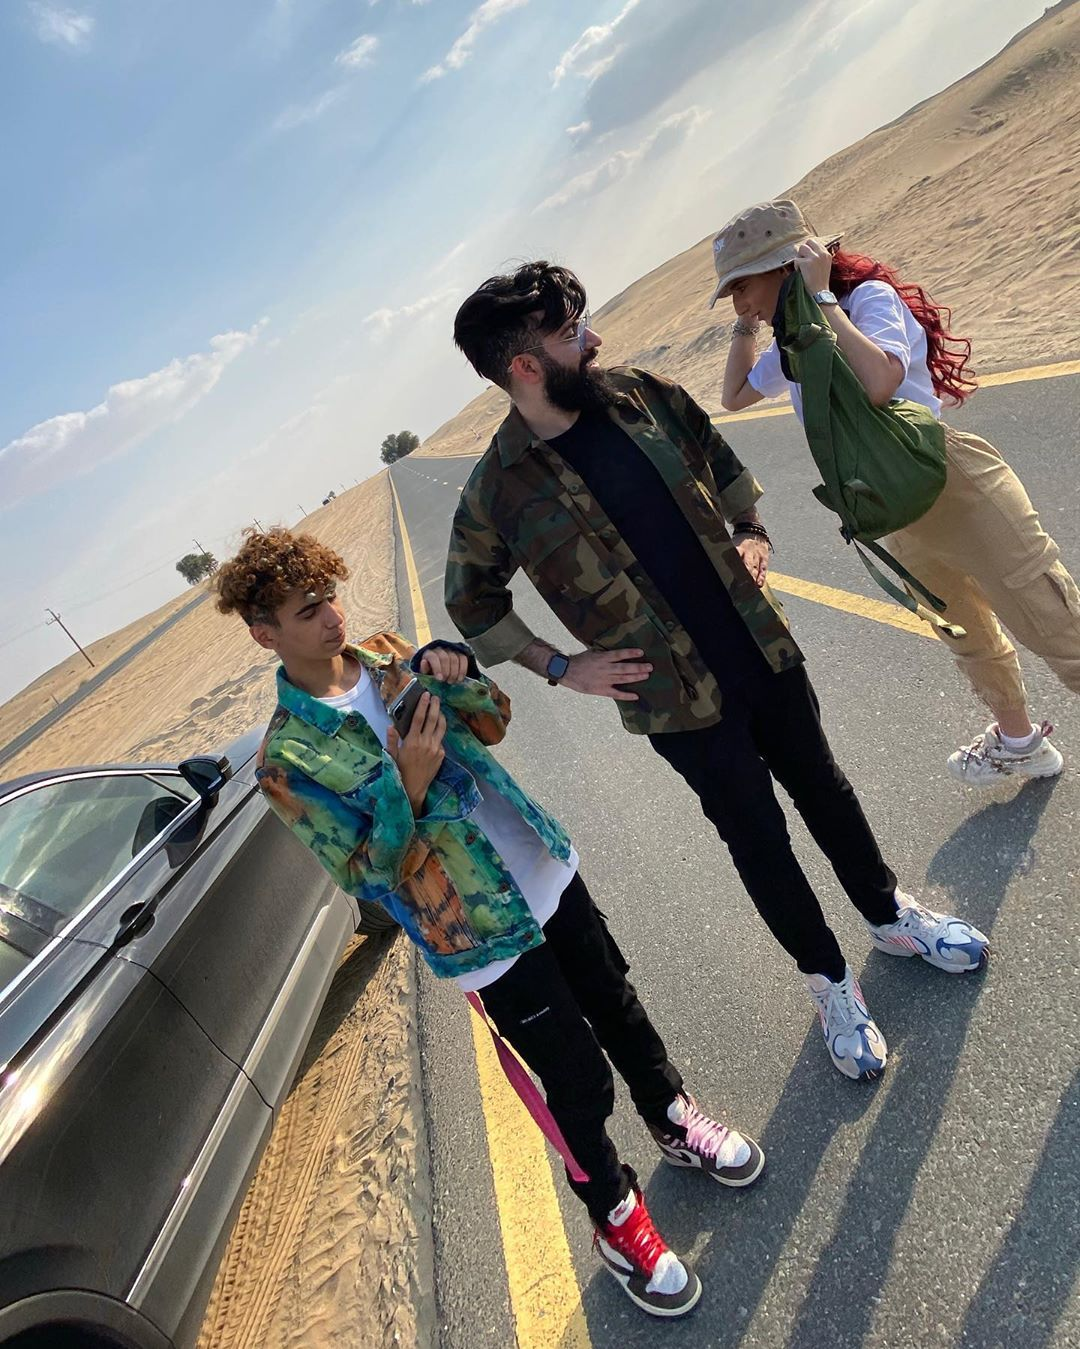 Ahmed Alnasheet أحمد النشيط On Instagram I Don T Know What We Were Doing Movlogs Took This Photo What Are We Doing Narin Photo Beauty I Don T Know